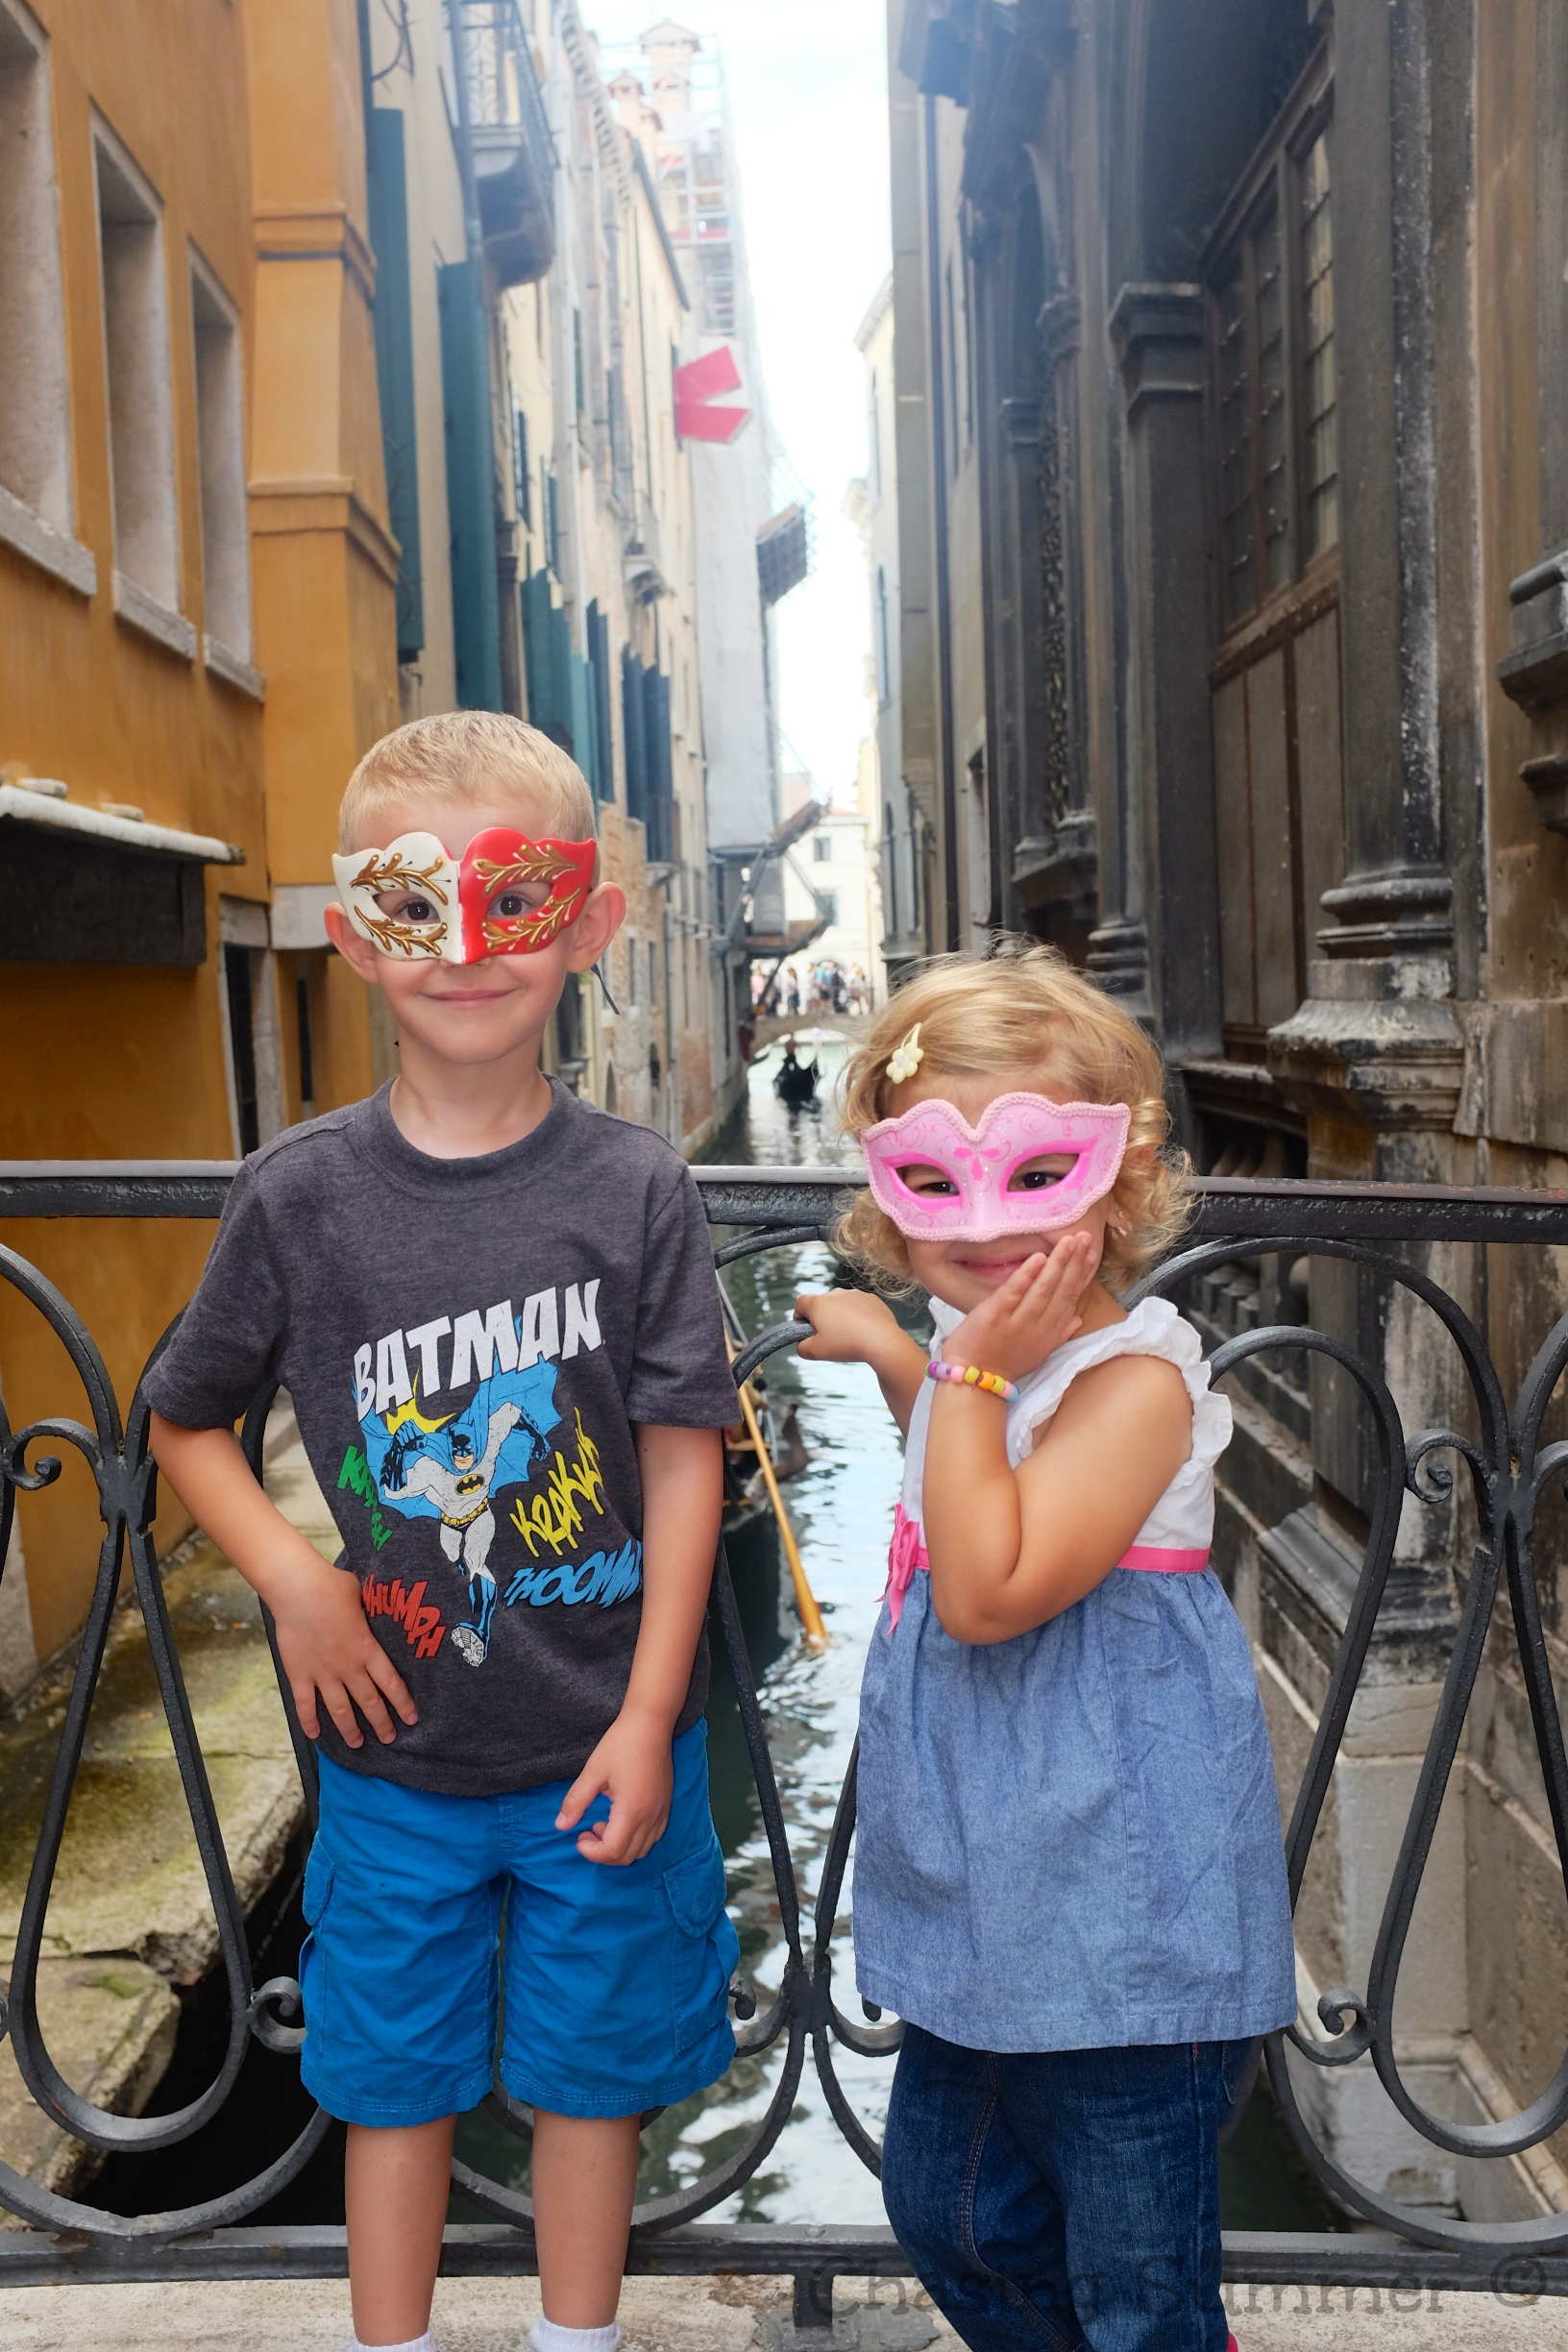 Masked Kids in Venice